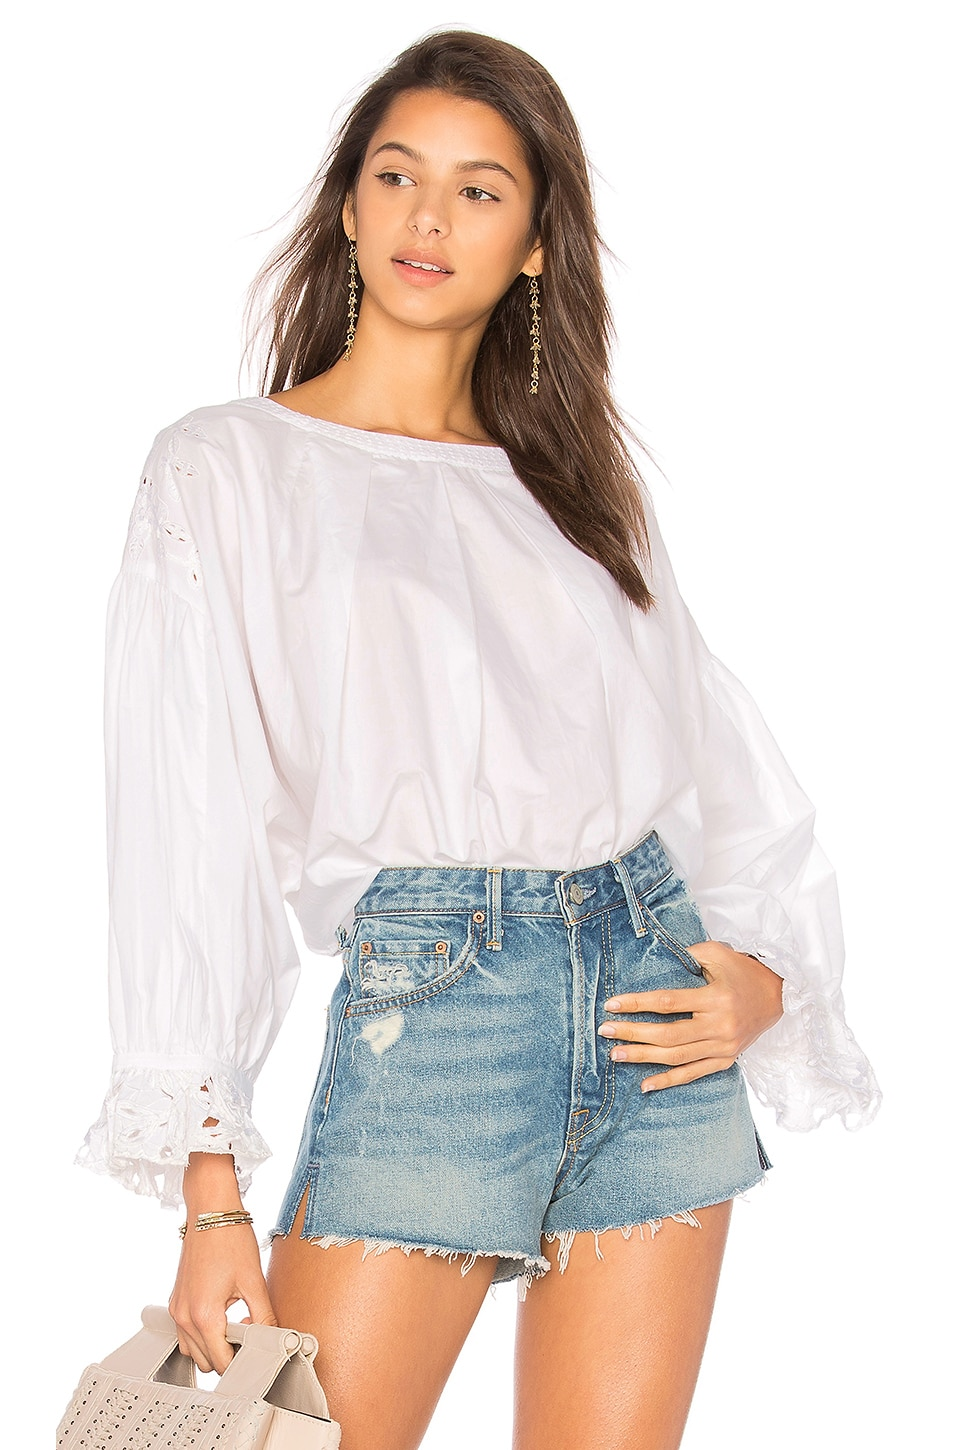 Free People Wishing Well Blouse in White